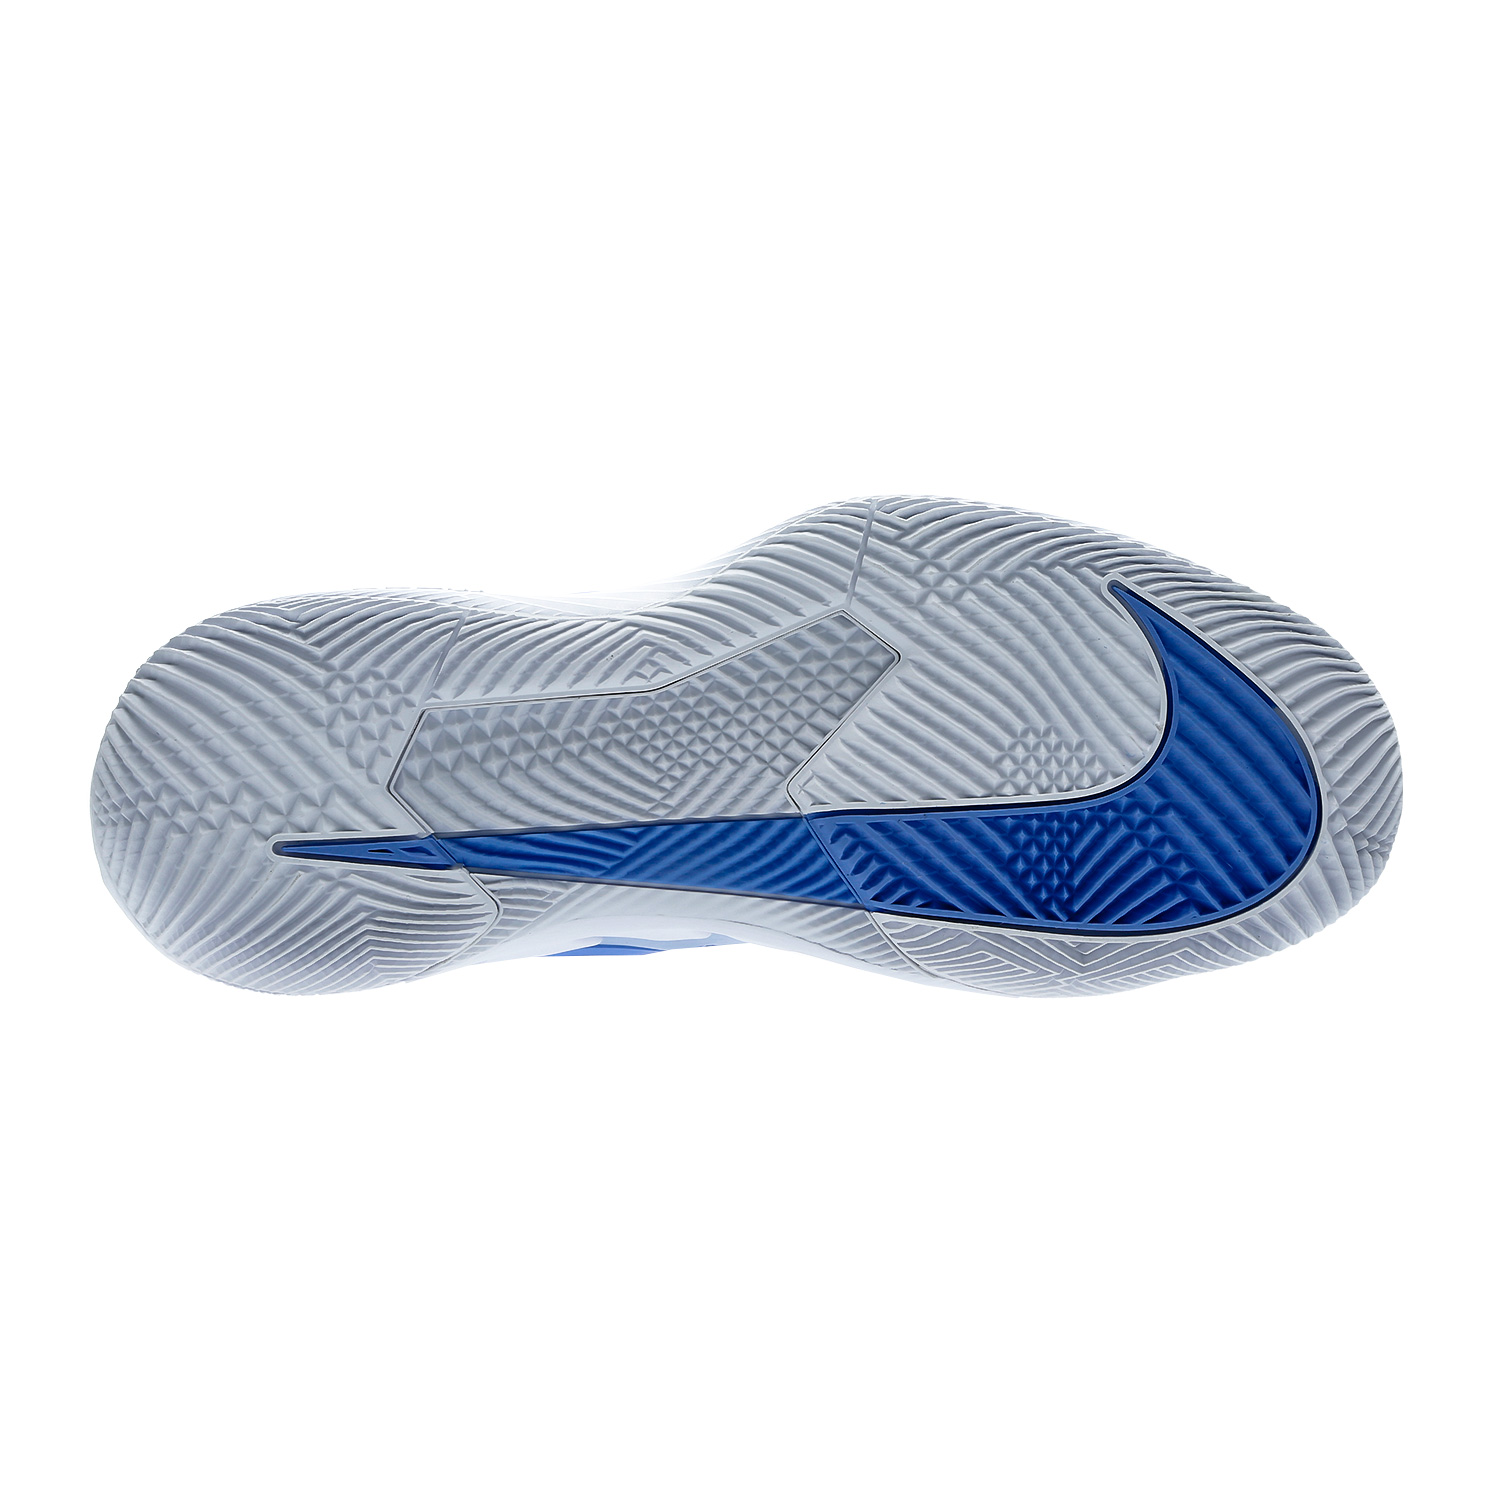 Кроссовки NIKE  WMNS AIR ZOOM VAPOR X HC BLUE M.SHARAPOVA. Фото ¹2